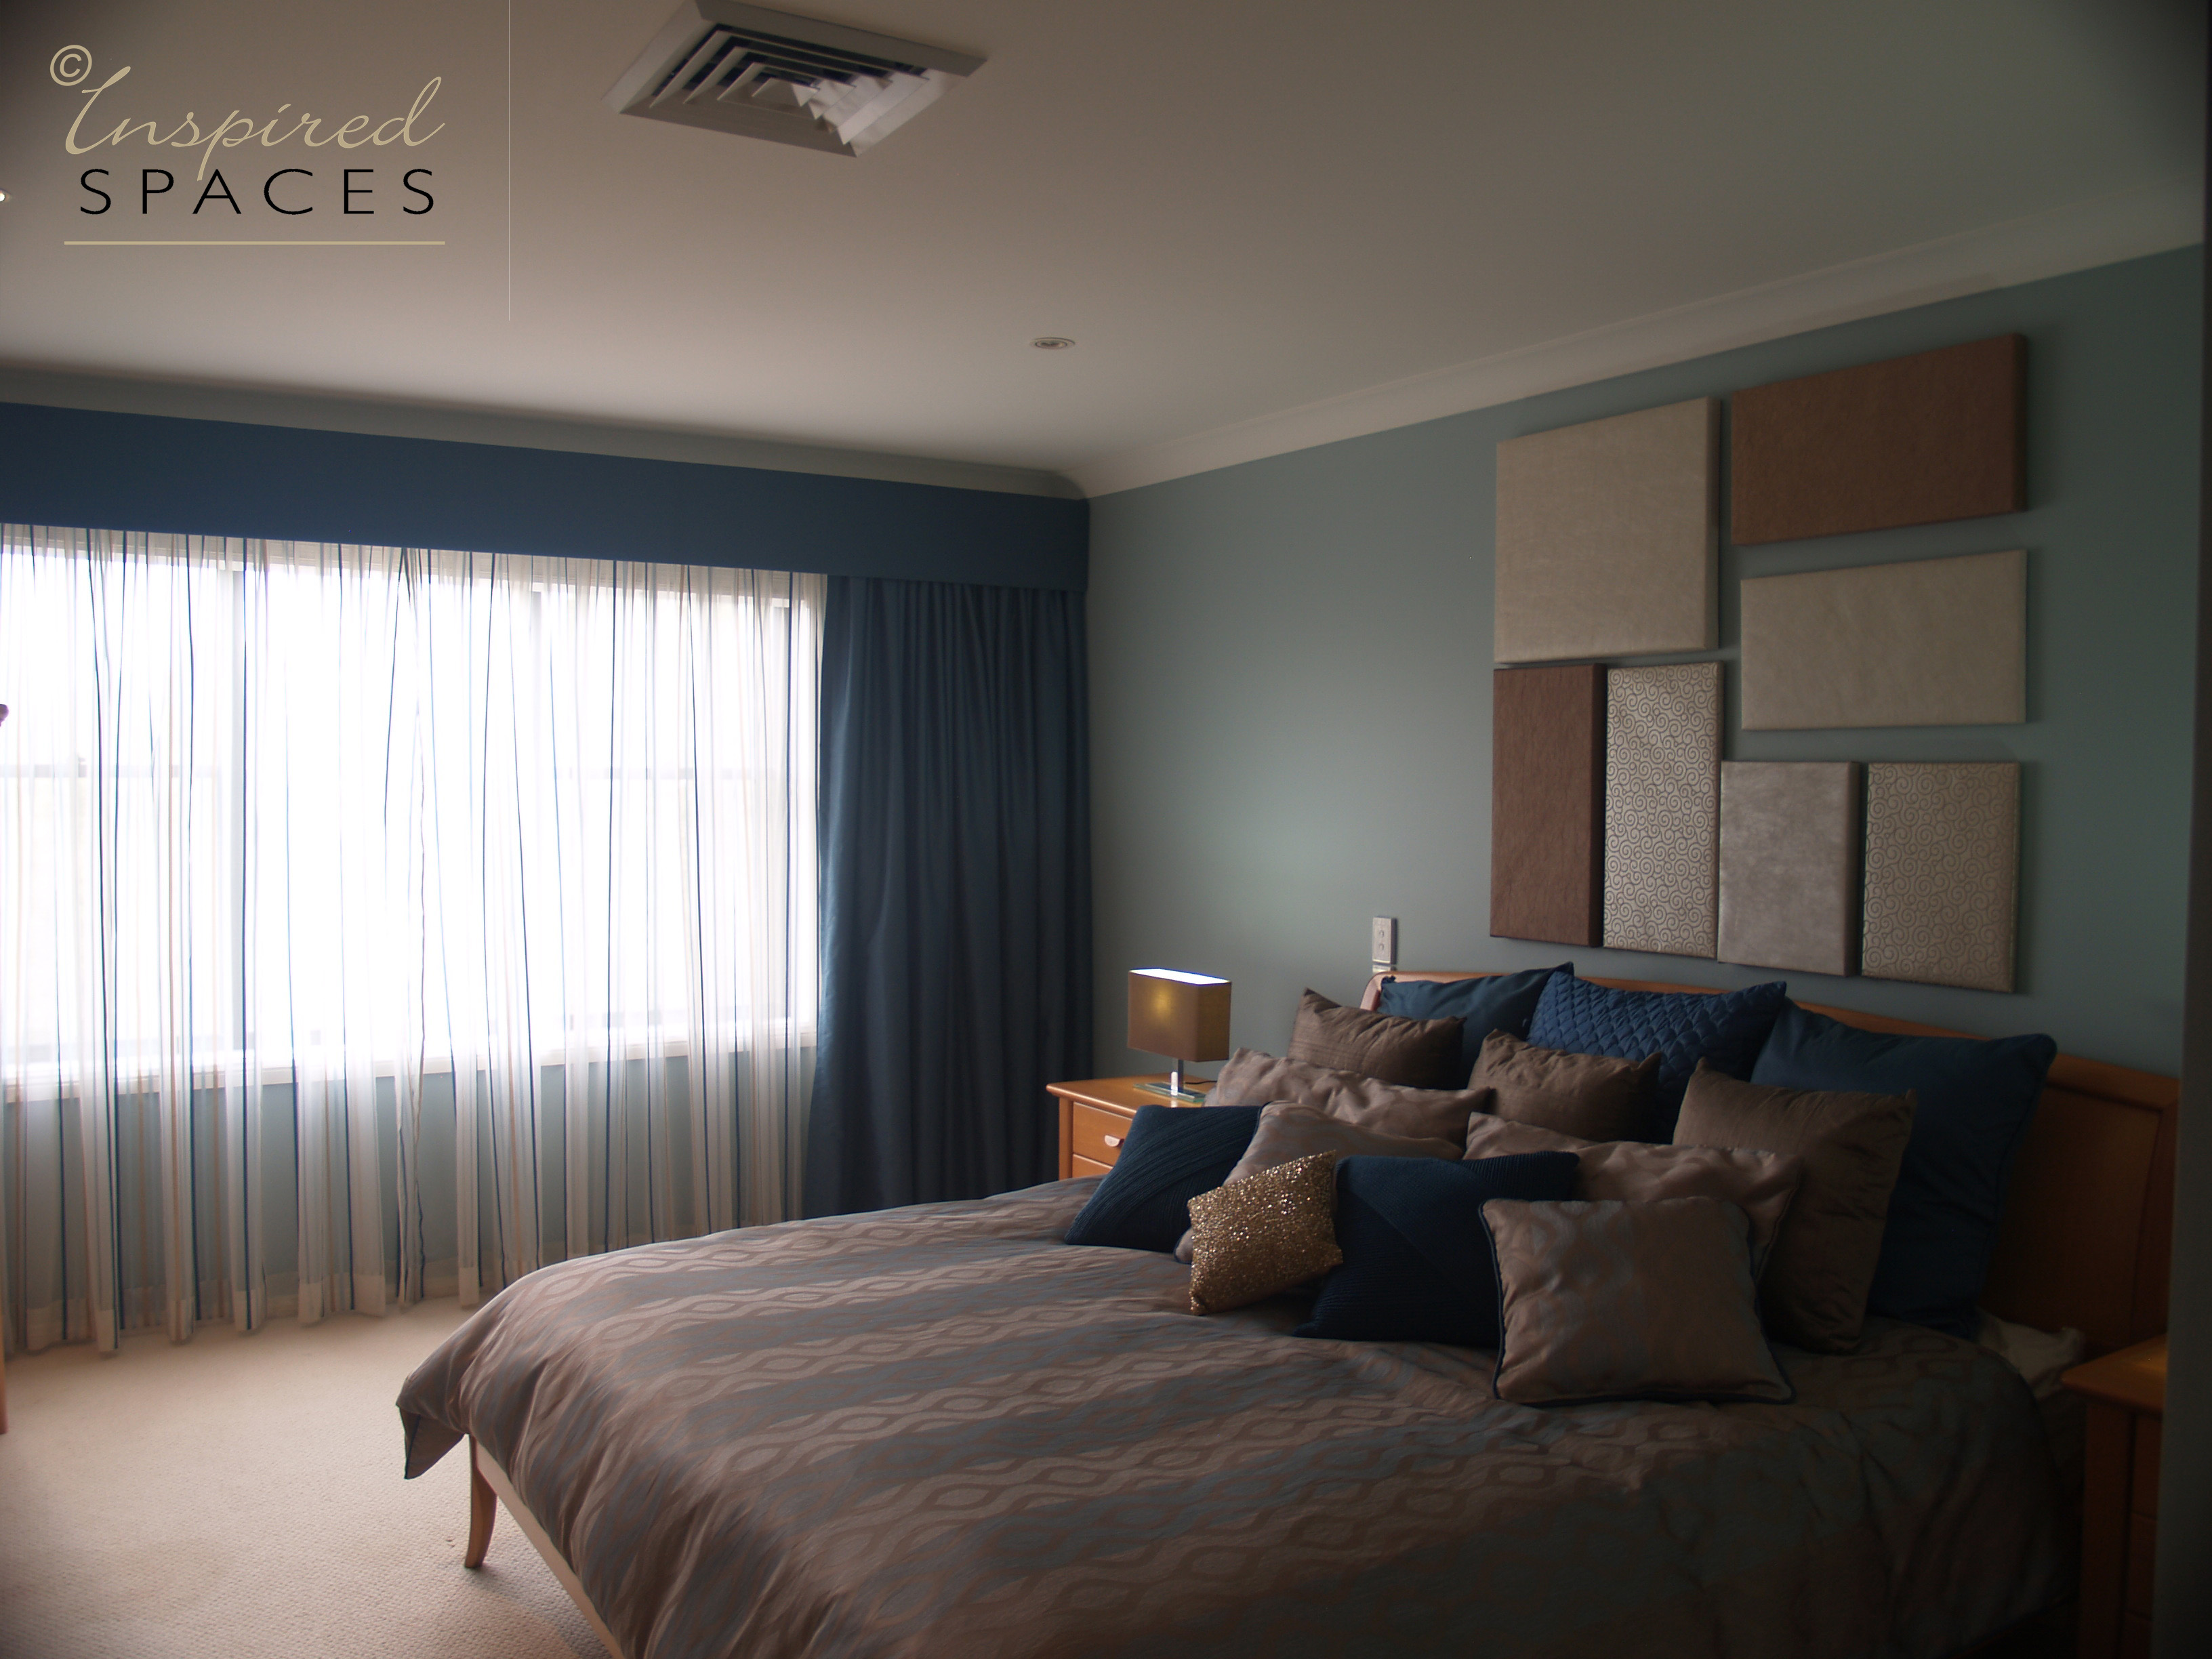 Bedroom Design And Makeover At Castle Hill By Inspired Spaces